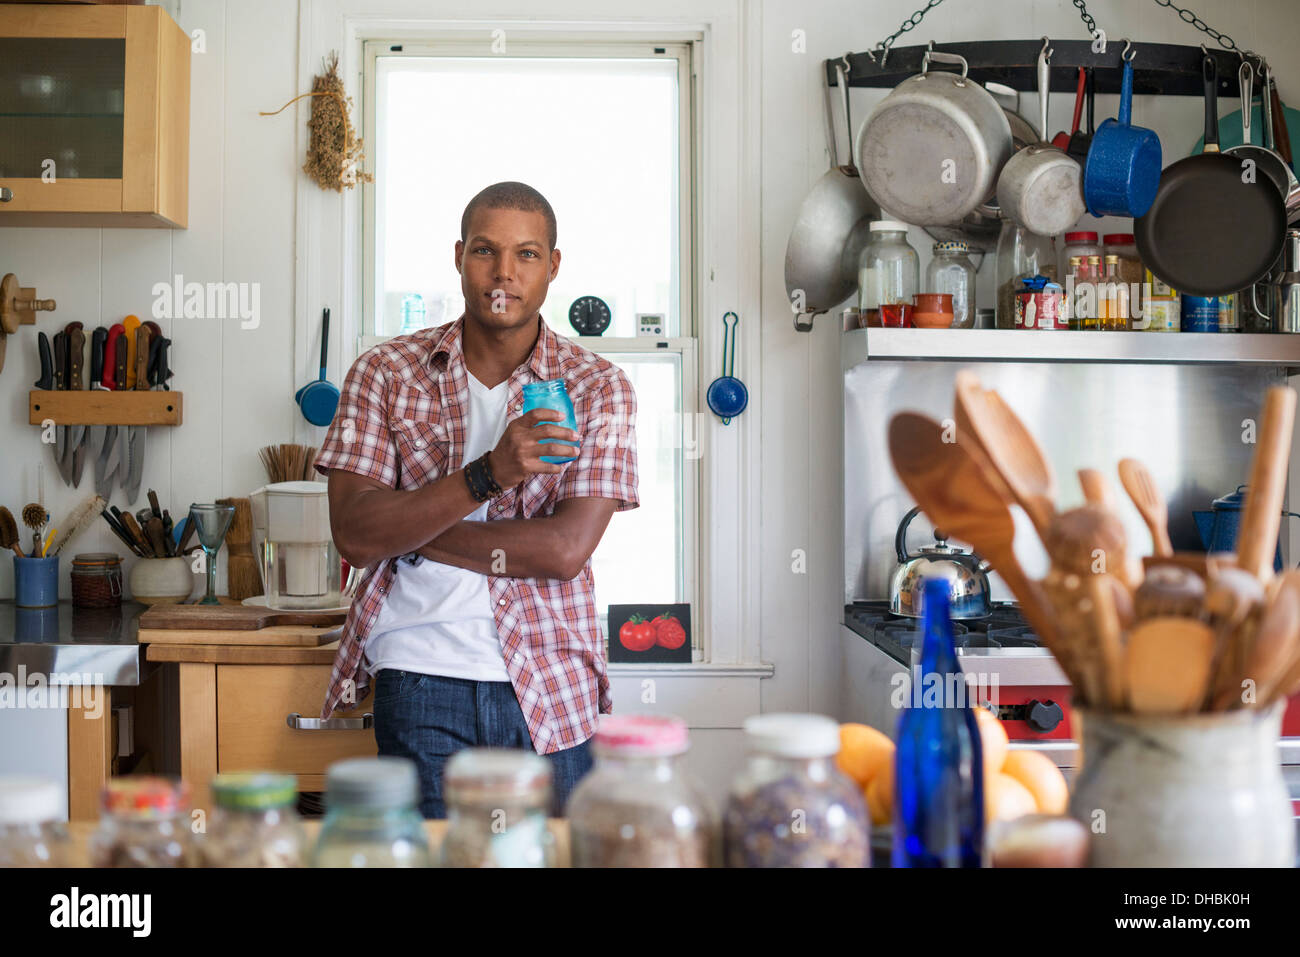 A man holding a drink standing in a farmhouse kitchen. - Stock Image